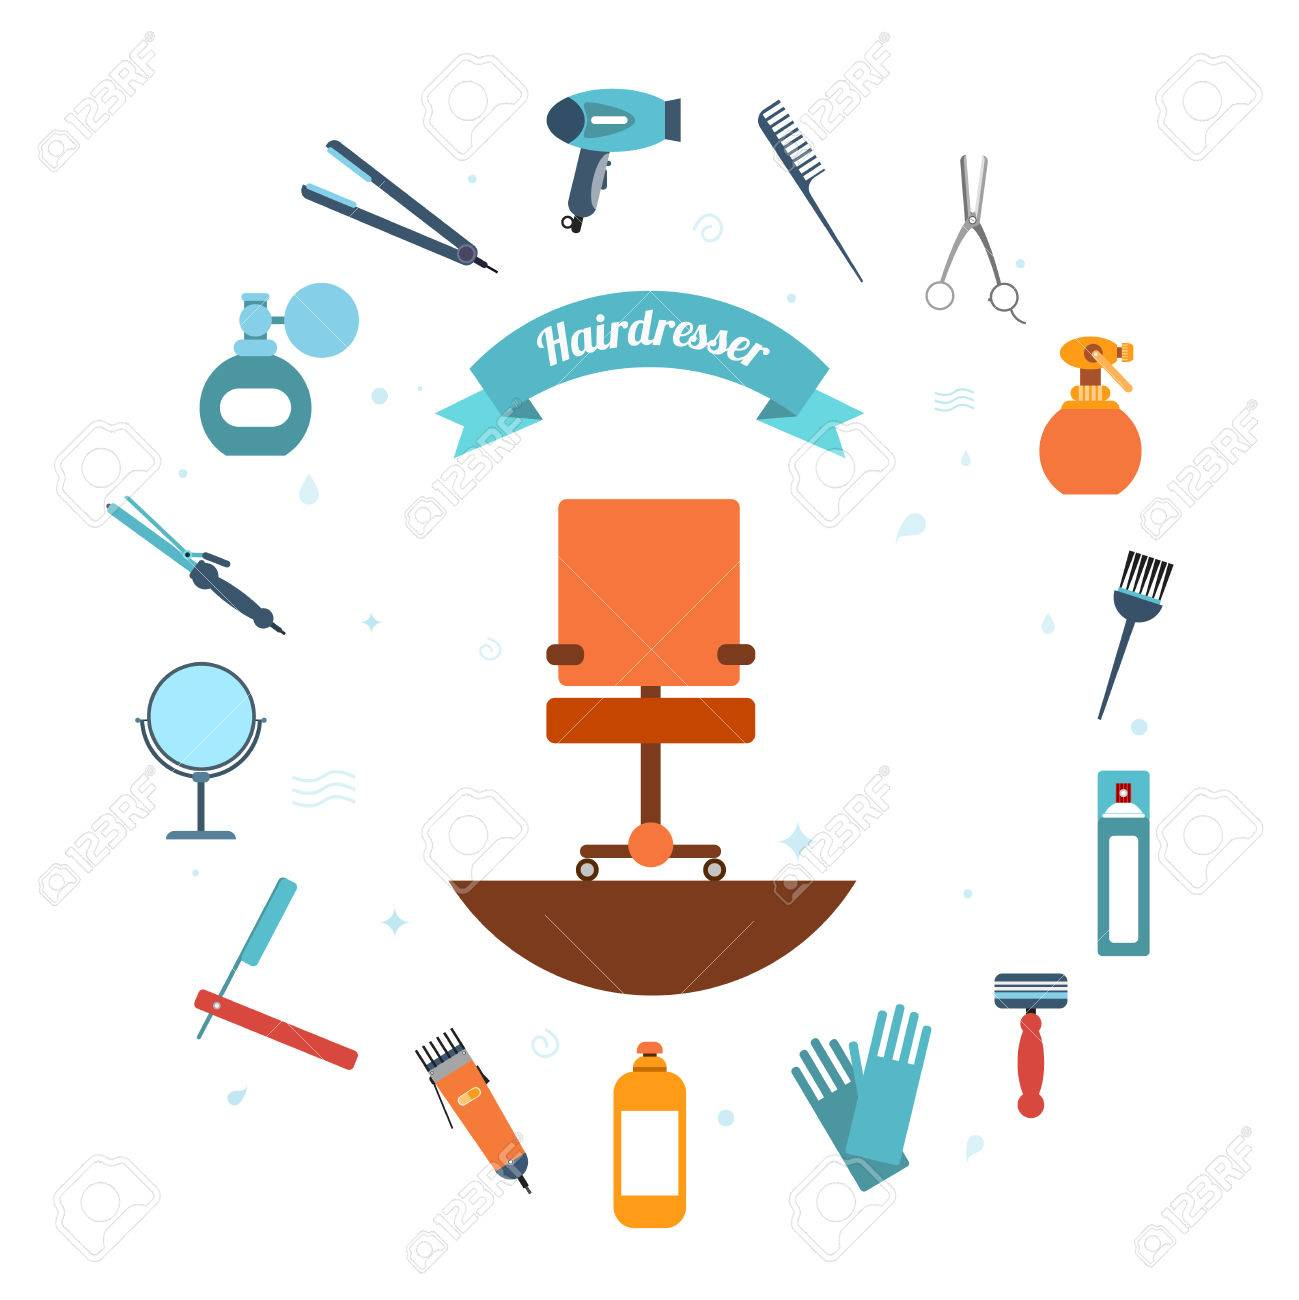 Hairdresser Decorative Set With Beauty Haircut Accessories And Royalty Free Cliparts Vectors And Stock Illustration Image 33848704